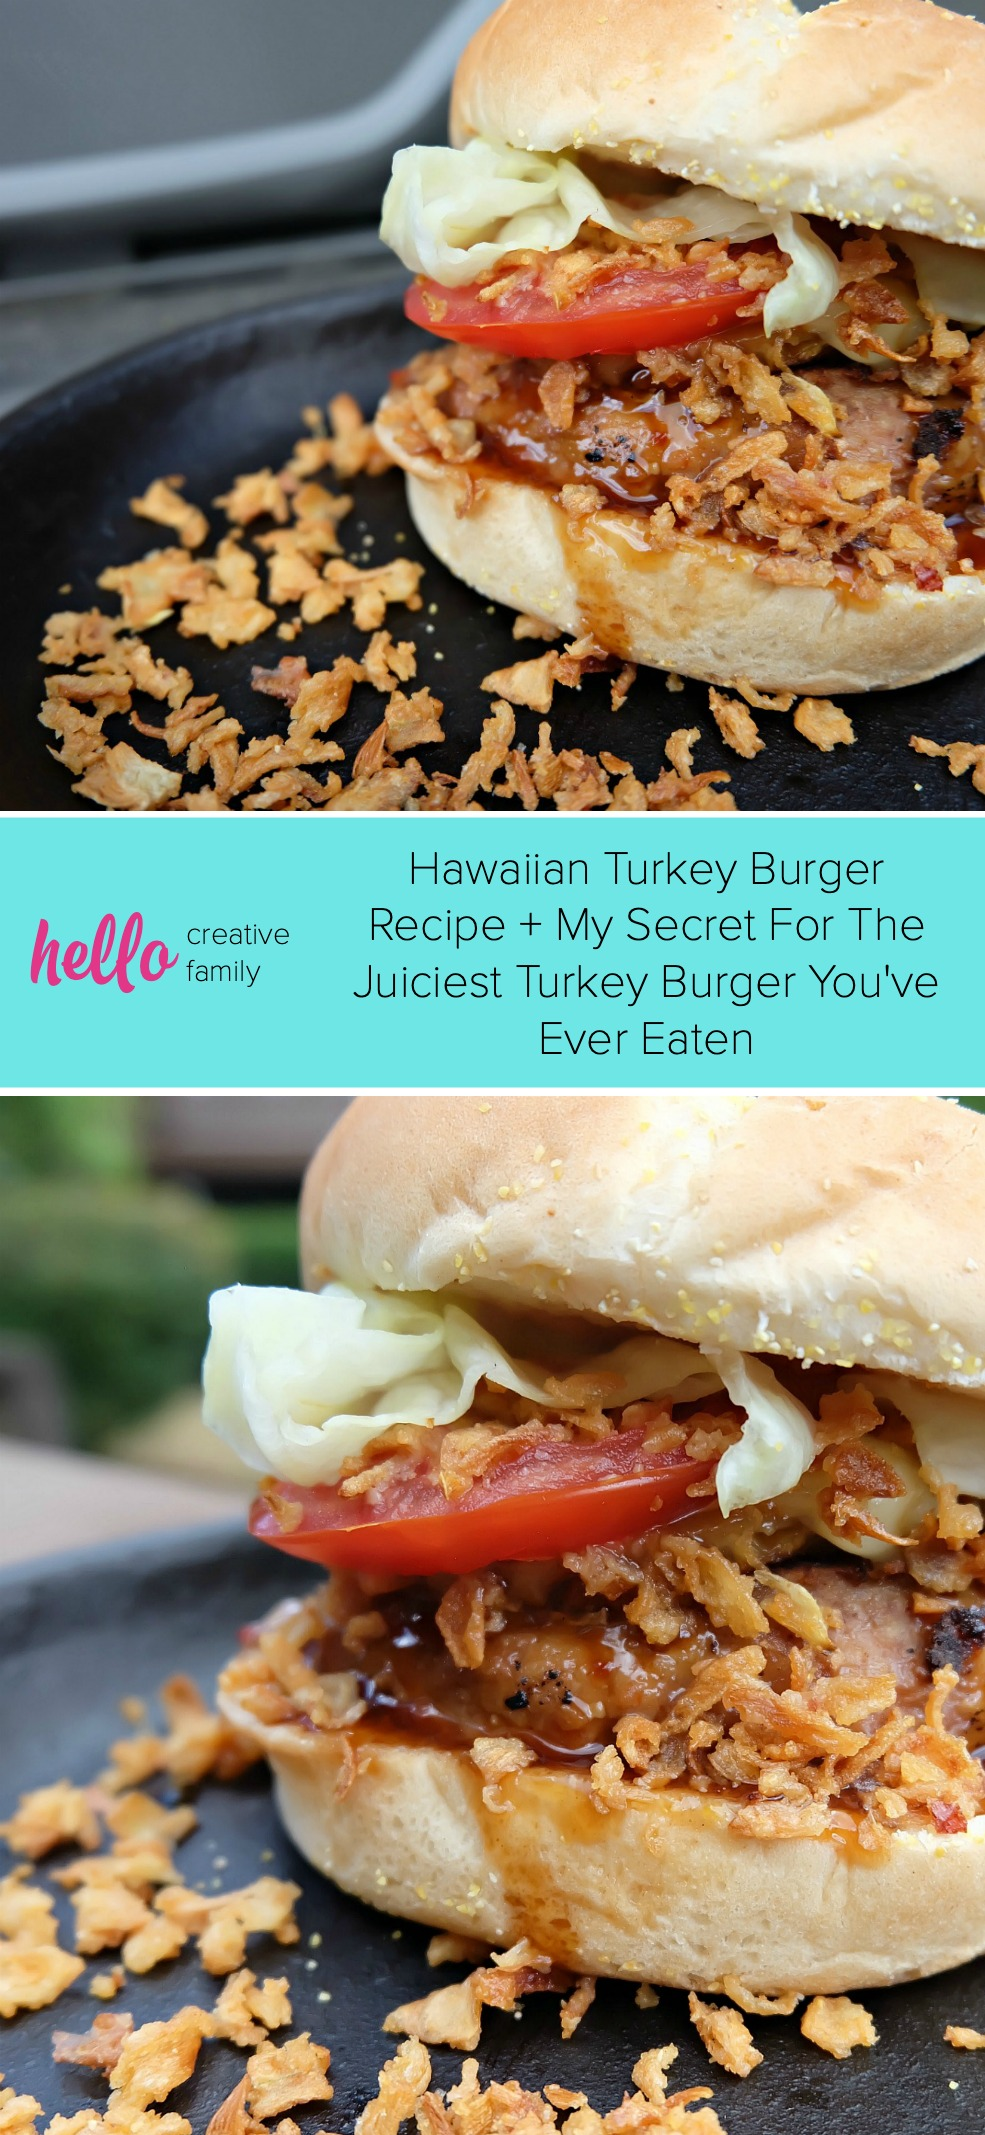 Fire up the BBQ and get out of the hot kitchen! We're sharing with you the best burger recipe you've ever tasted-- Our Hawaiian Turkey Burger Recipe. We're also sharing our secrets for making the juiciest turkey burger you've ever eaten. Juicy, flavorful and healthy you'll feel good about feeding this easy meal to your family! #Turkey #Burger #HawaiianFood #Recipe #Sponsored